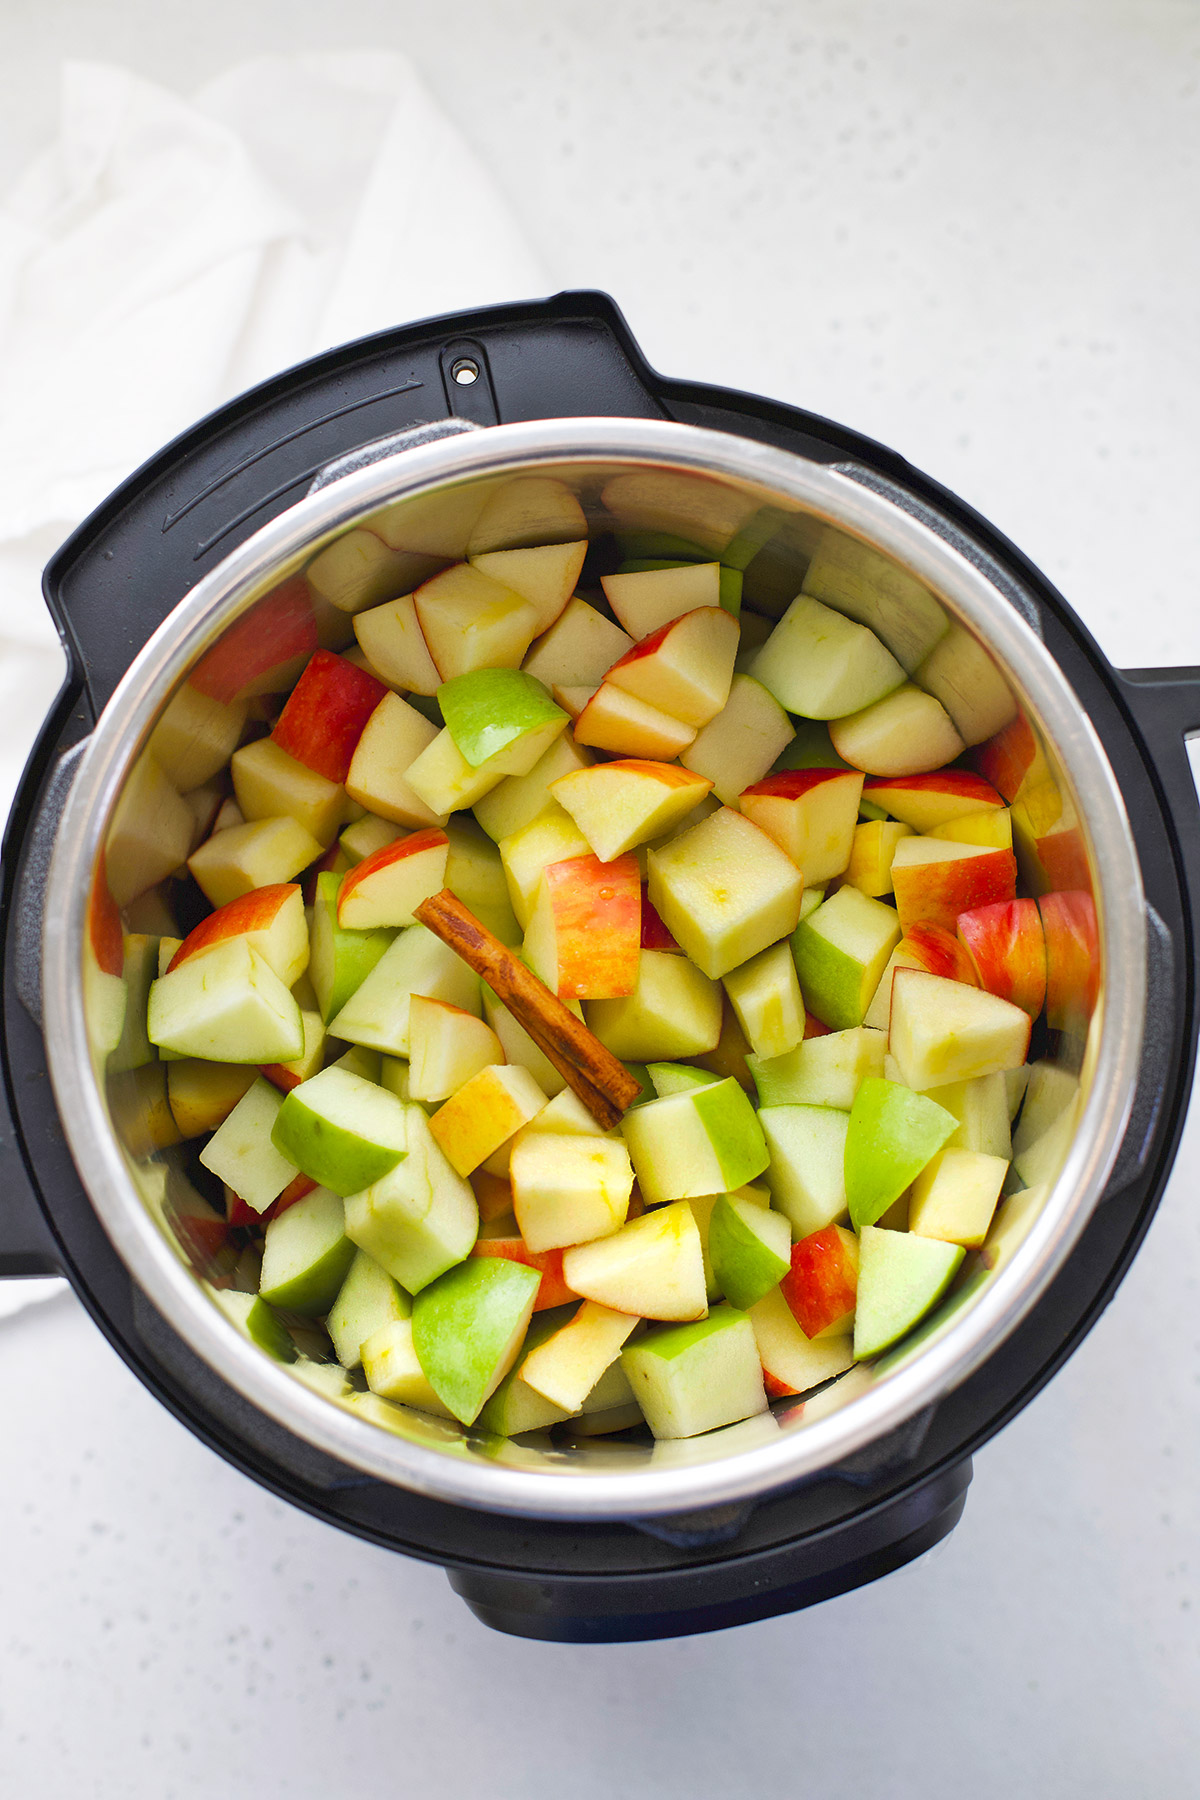 Apples in an Instant Pot, ready to be turned into Instant Pot Applesauce